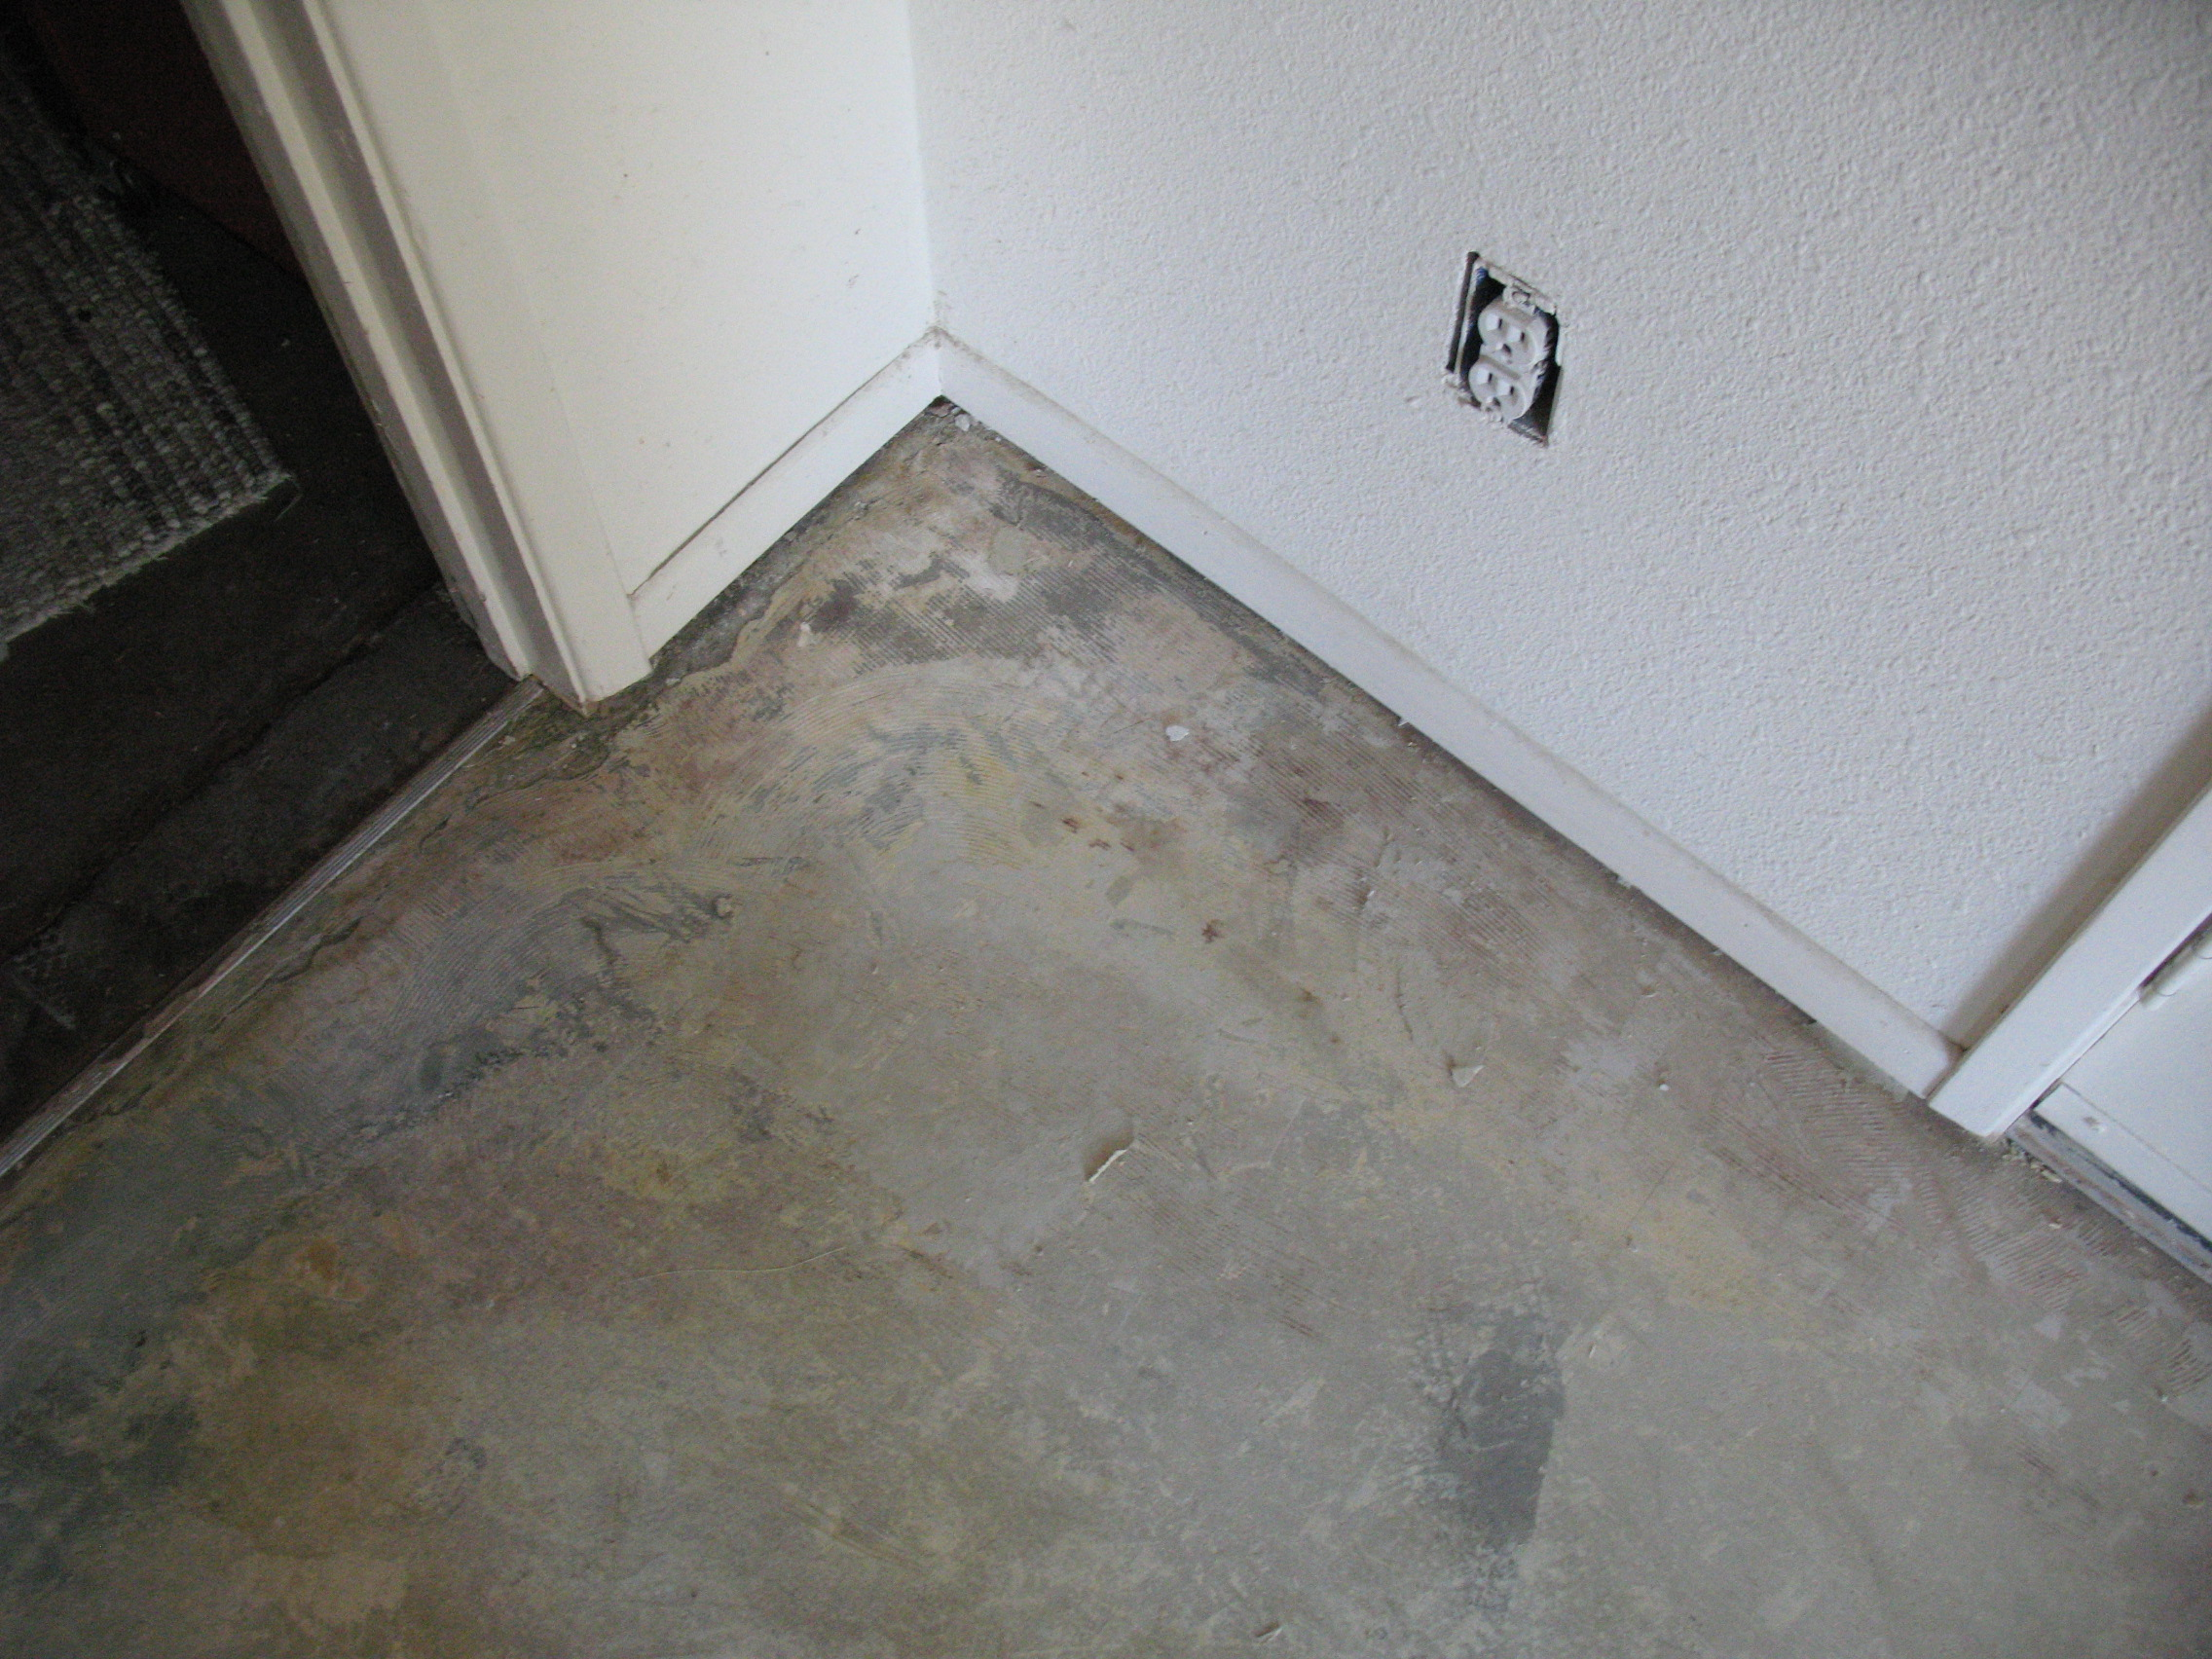 Bathroom Floor Black Mold : Mold under tile pictures hot pantyhose